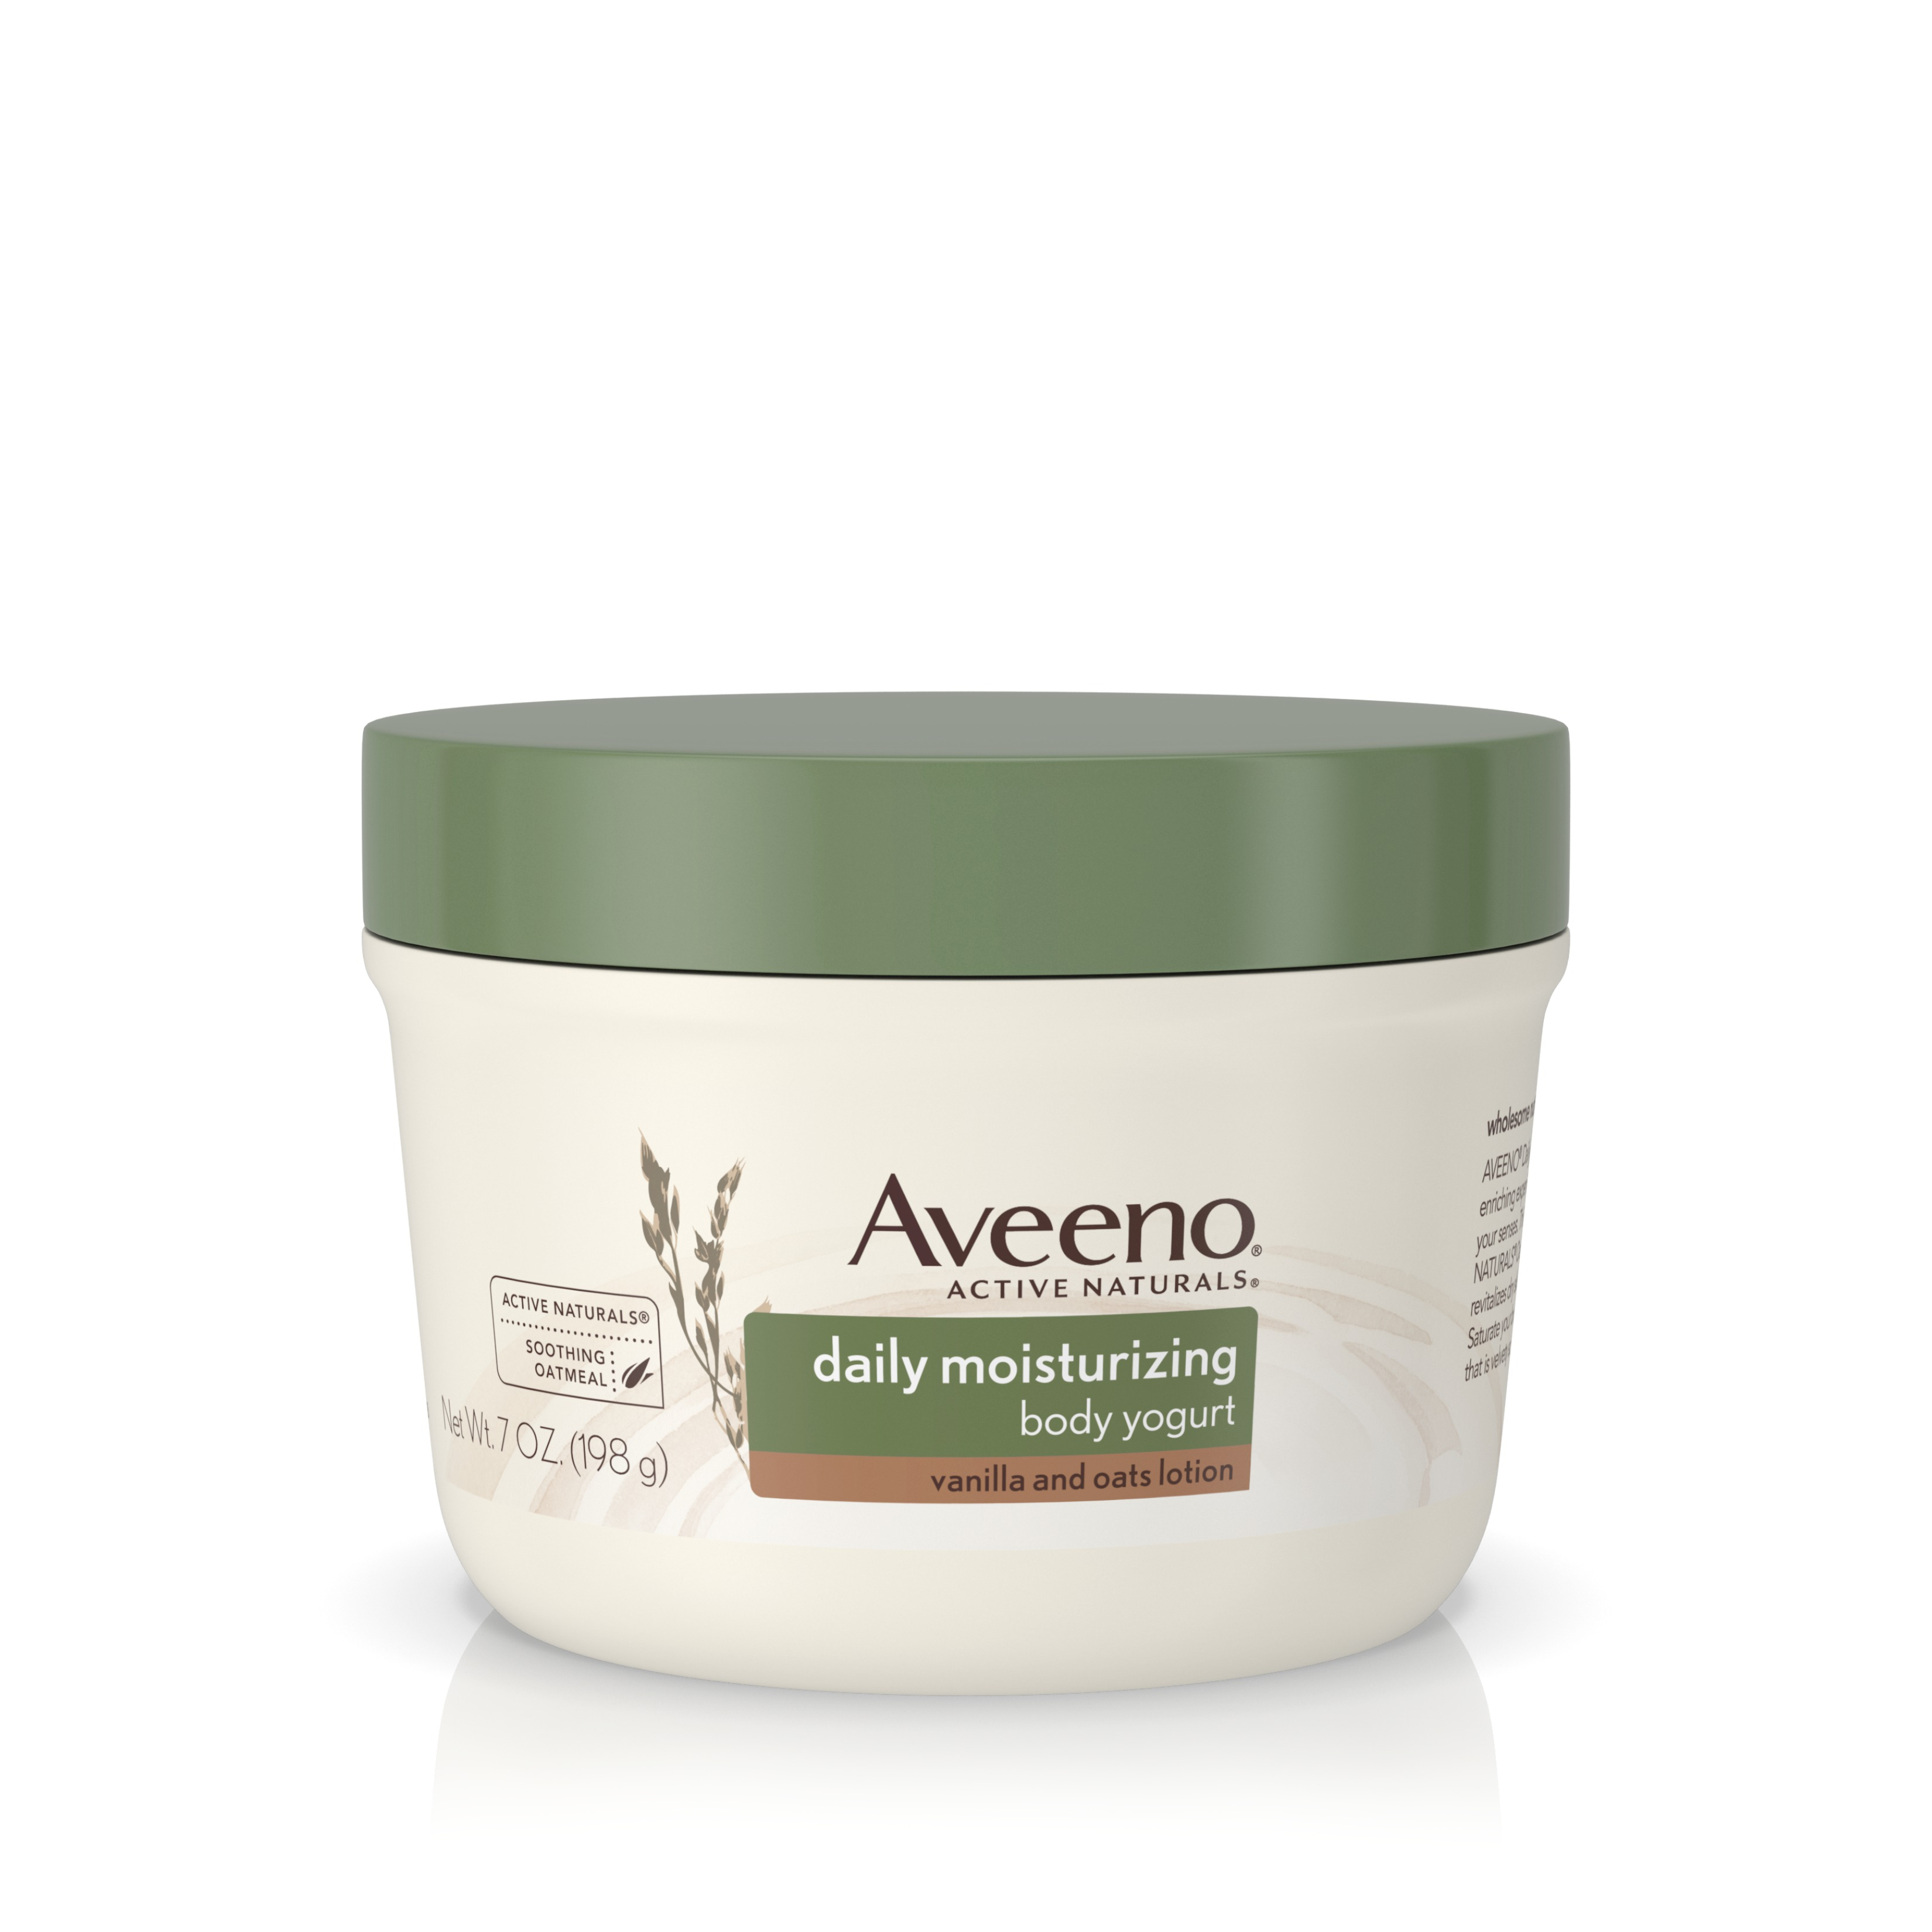 Aveeno Active Naturals Daily Moisturizing Body Yogurt Moisturizer, Vanilla And Oats, 7oz - Walmart.com